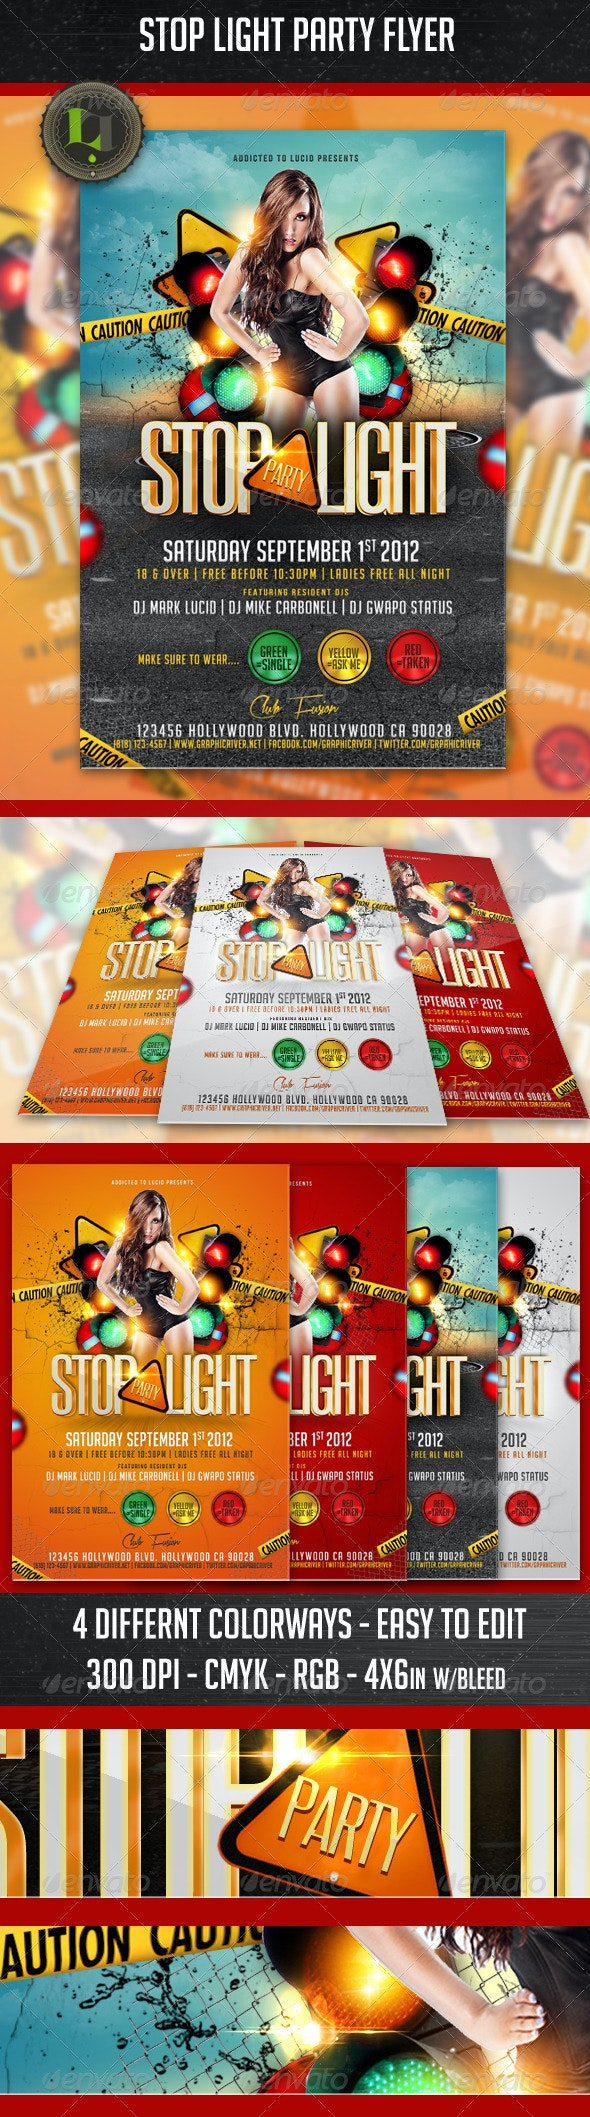 Stop Light Party Flyer - Clubs & Parties Events